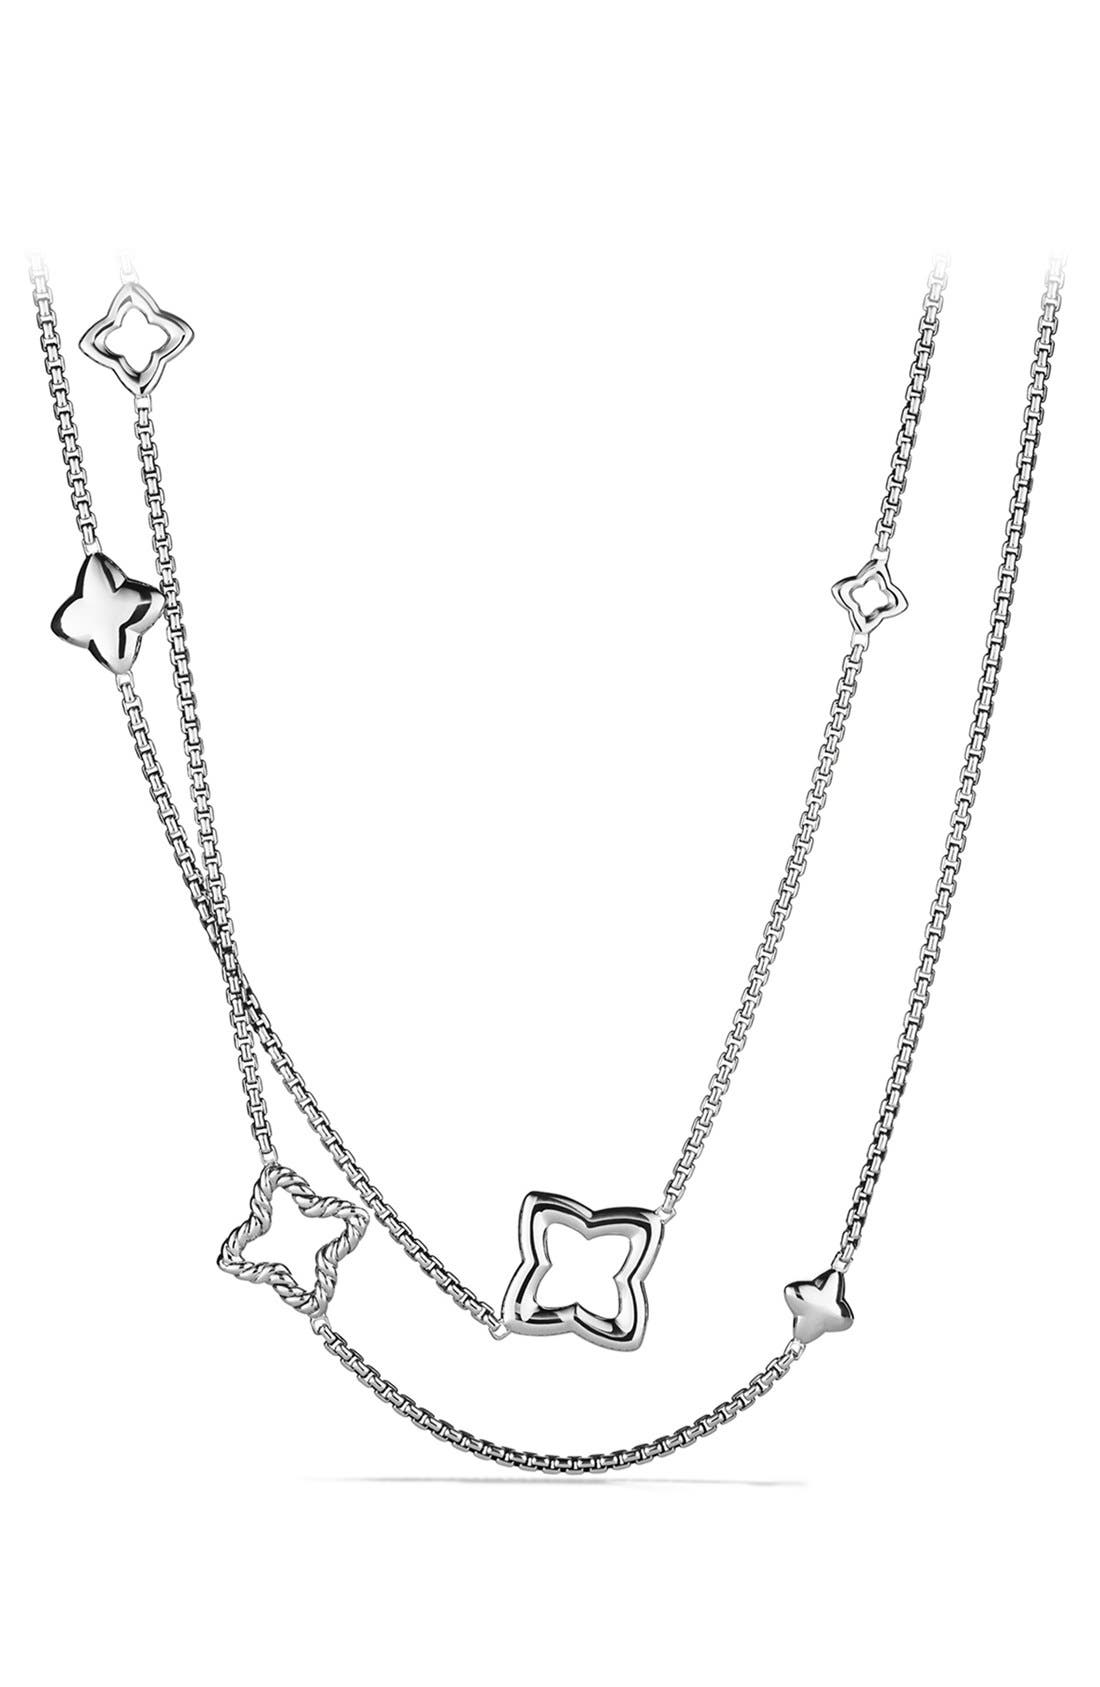 David Yurman 'Quatrefoil' Chain Necklace